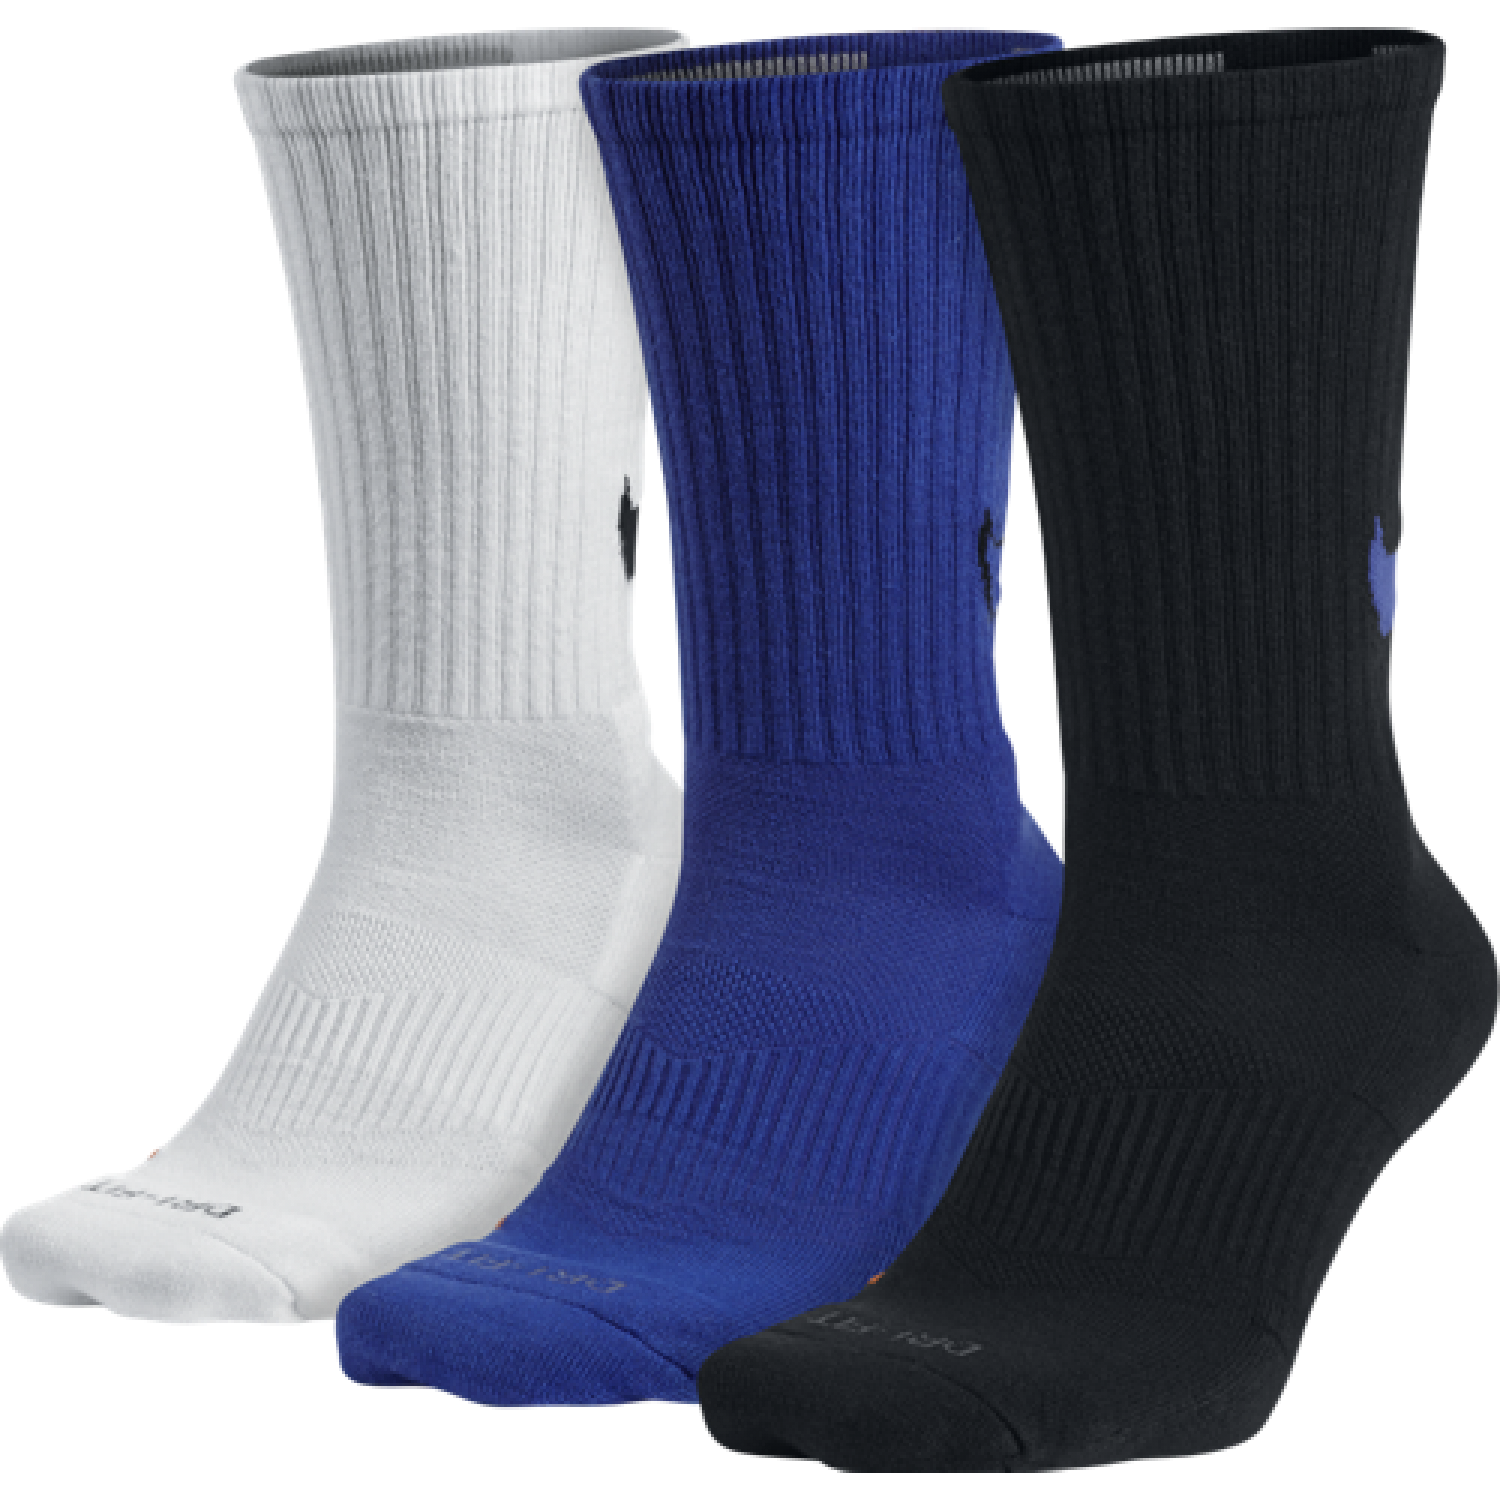 Nike Dri-FIT Cotton Swoosh Crew 3-Pair Pack Crew Cut Socks Shoes